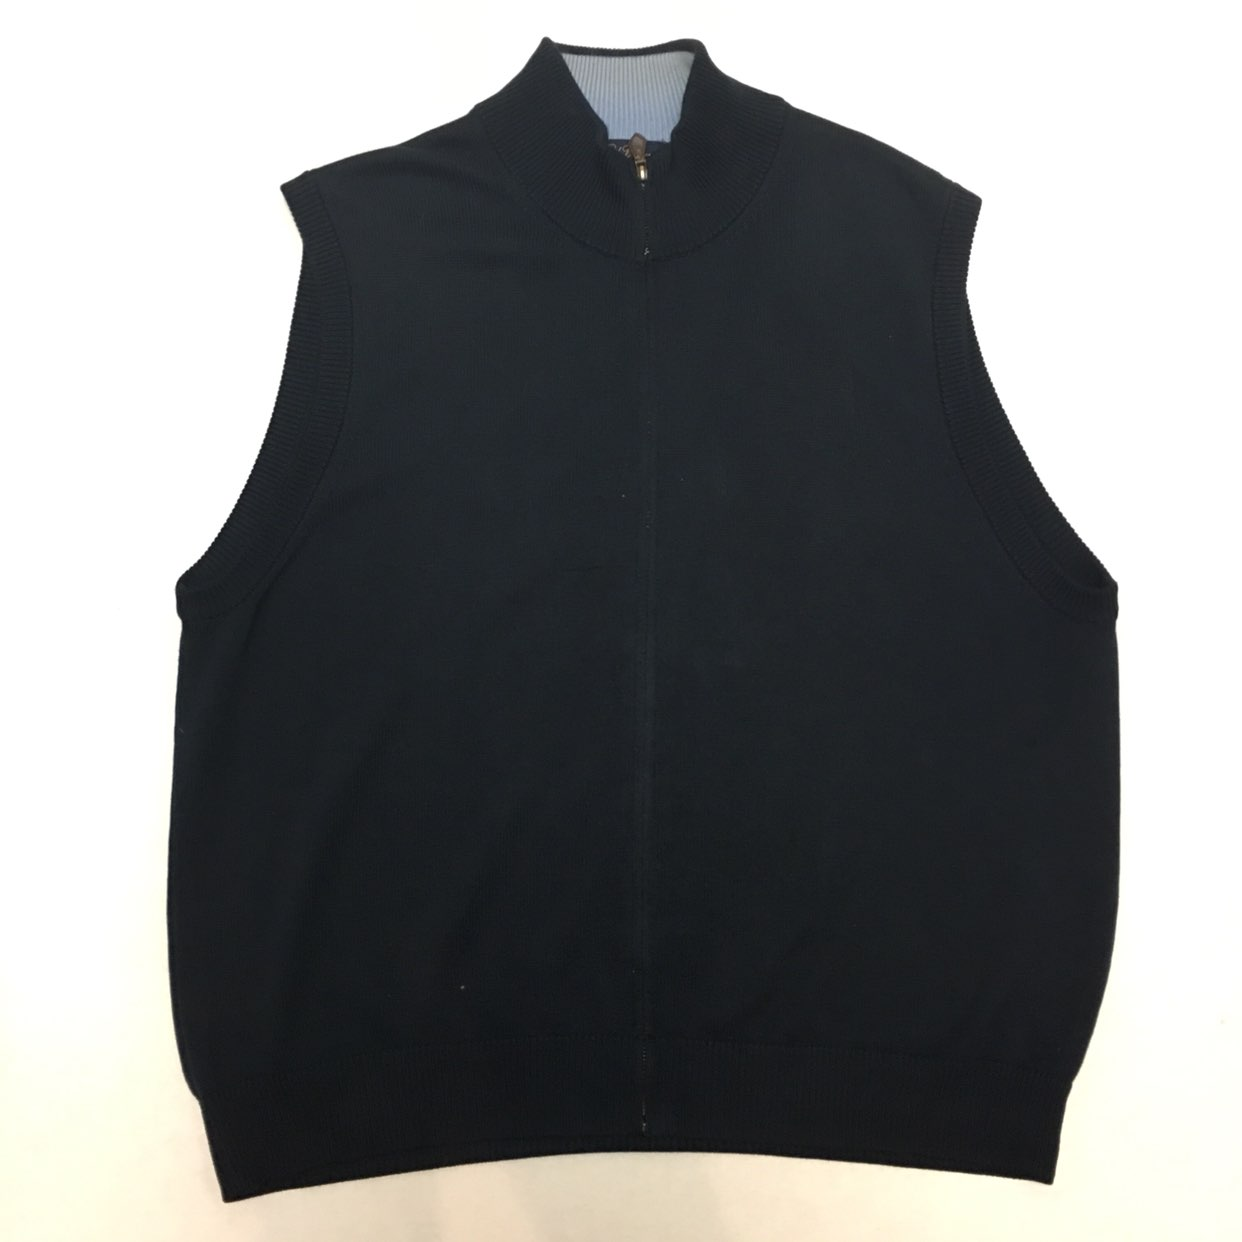 Men's Brooks Brothers Sweater Vest - Mercari: BUY & SELL THINGS ...